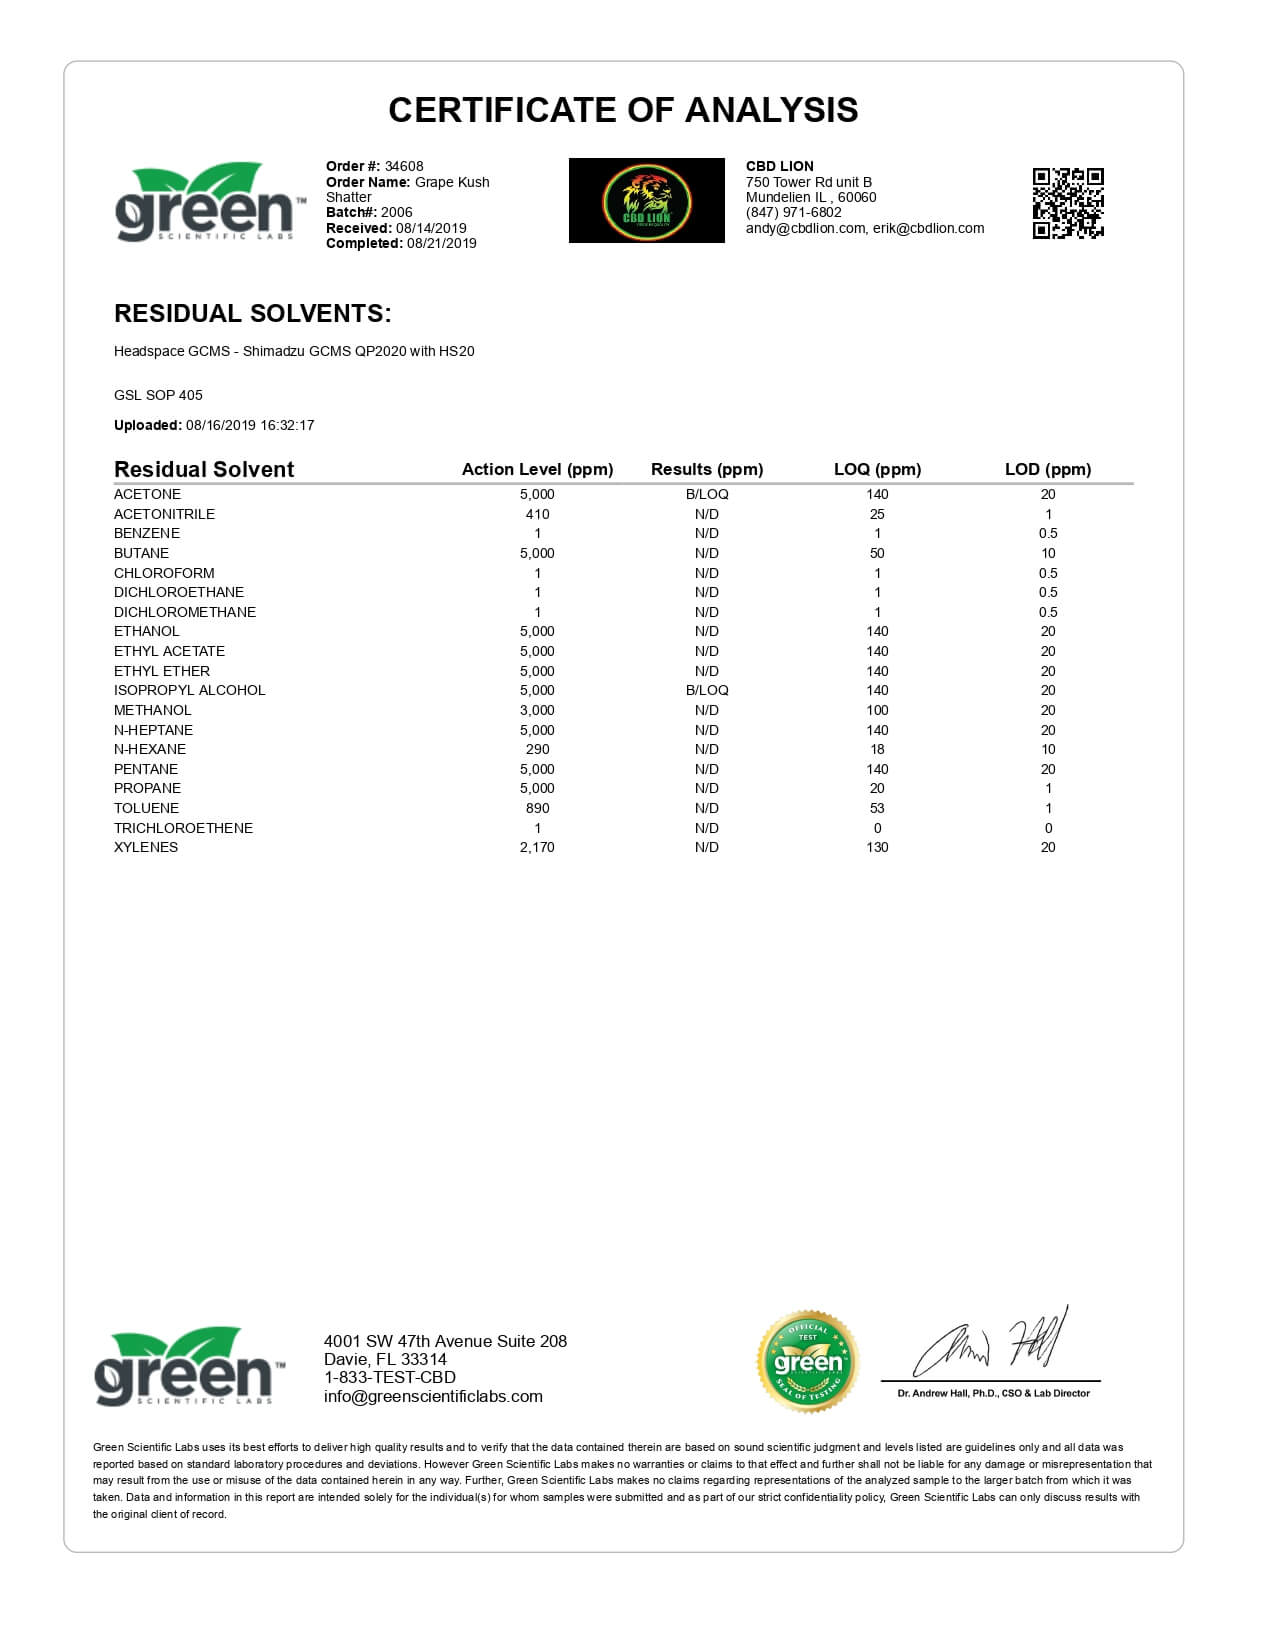 CBD Lion CBD Concentrate Grape Kush Shatter 1g Lab Report